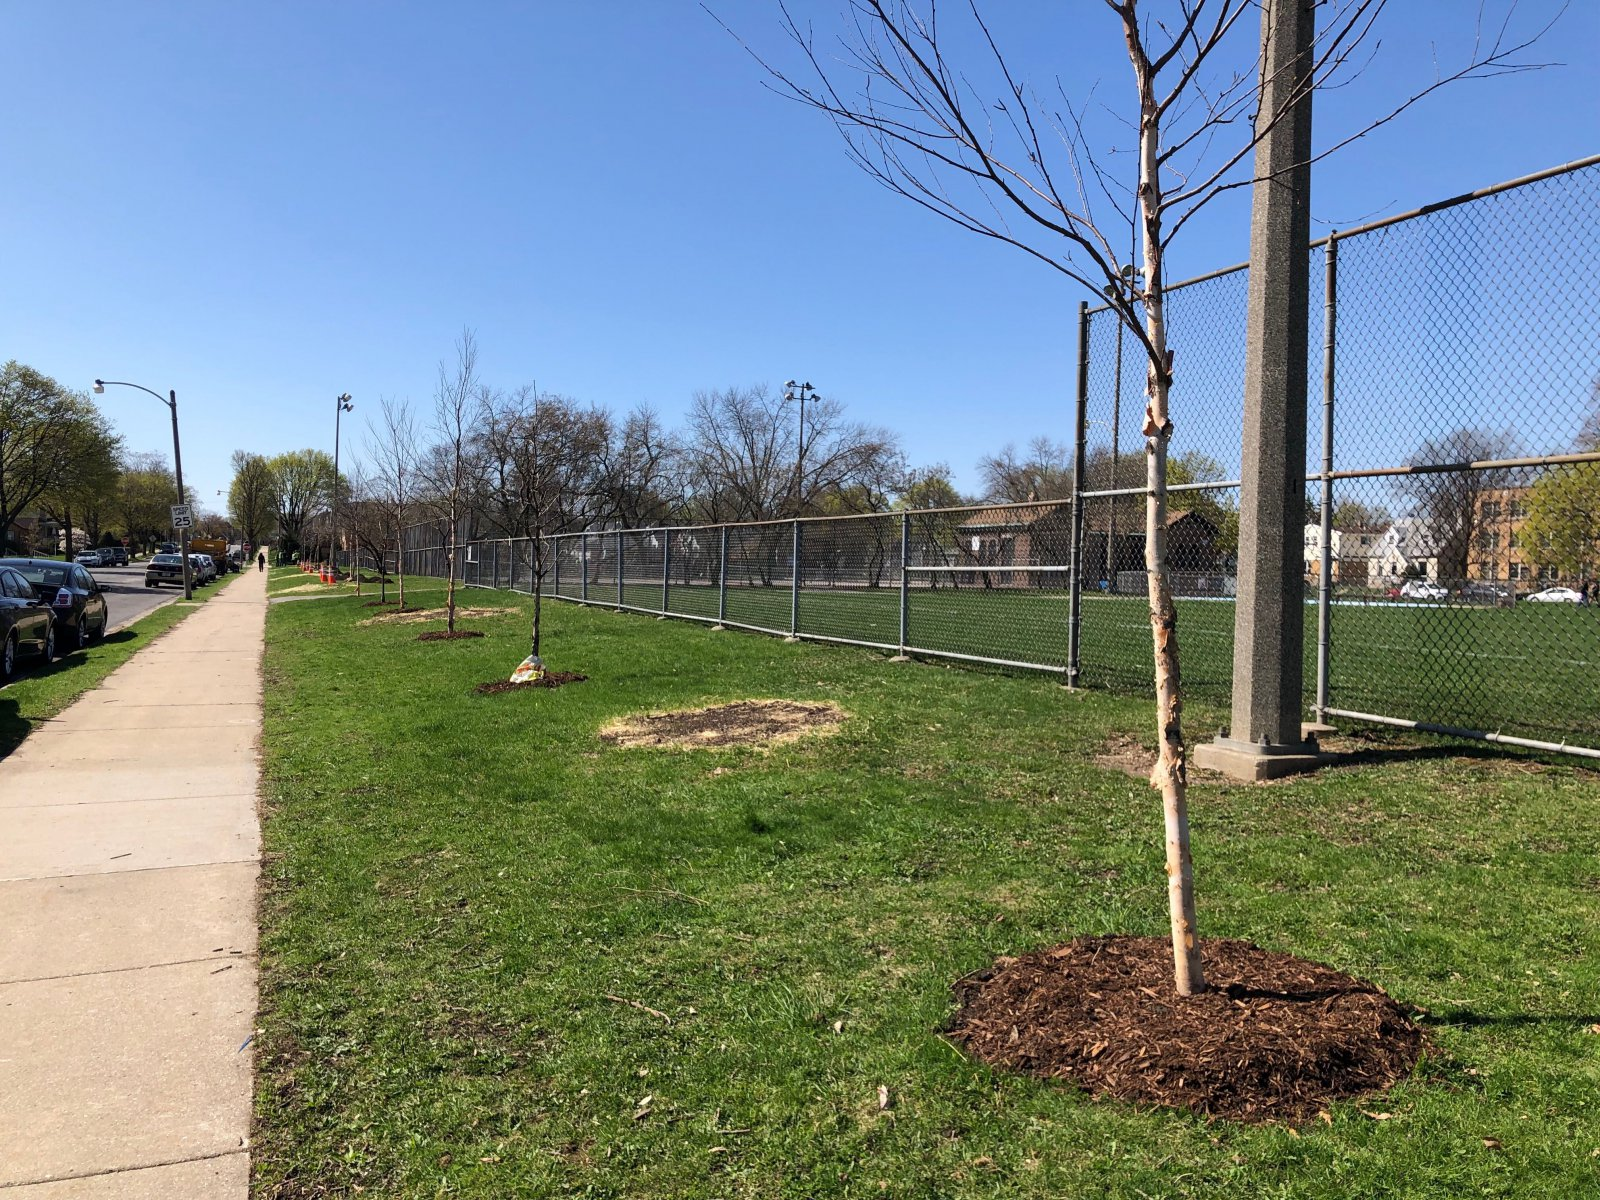 Replacement trees at Ohio Playfield for those lost to emerald ash border. Photo by Jeramey Jannene.